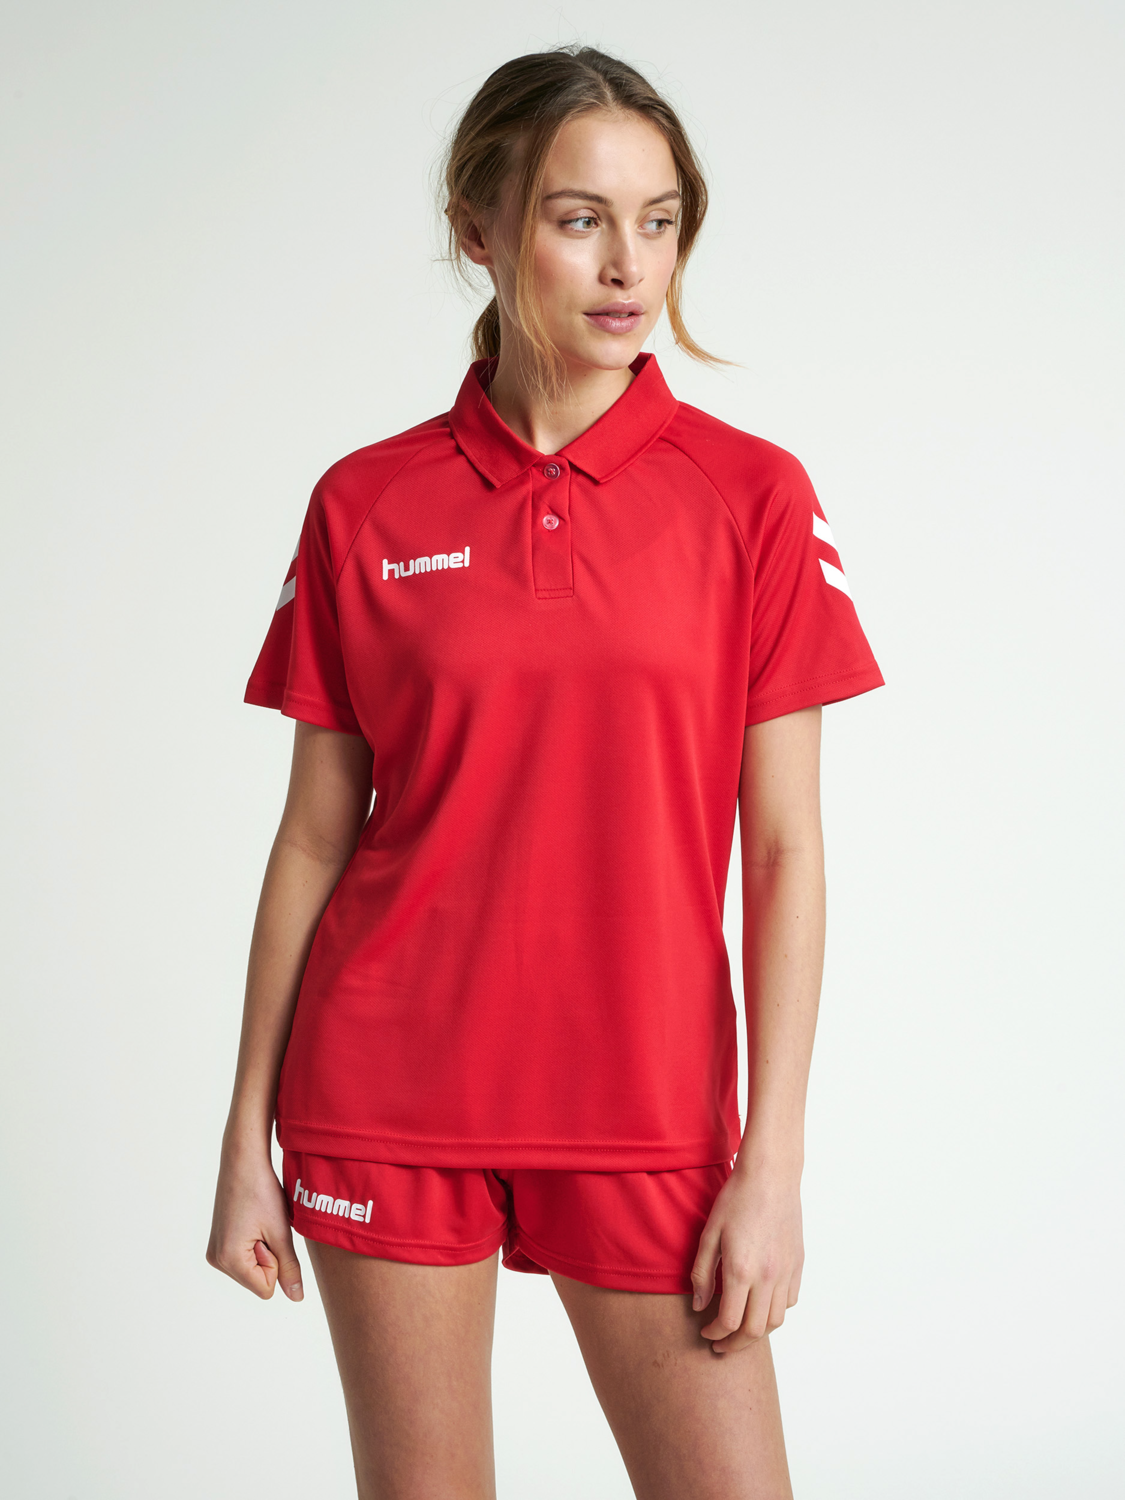 Details about  /Hummel Womens Sports Training Casual Core Functional Short Sleeve SS Polo Shirt